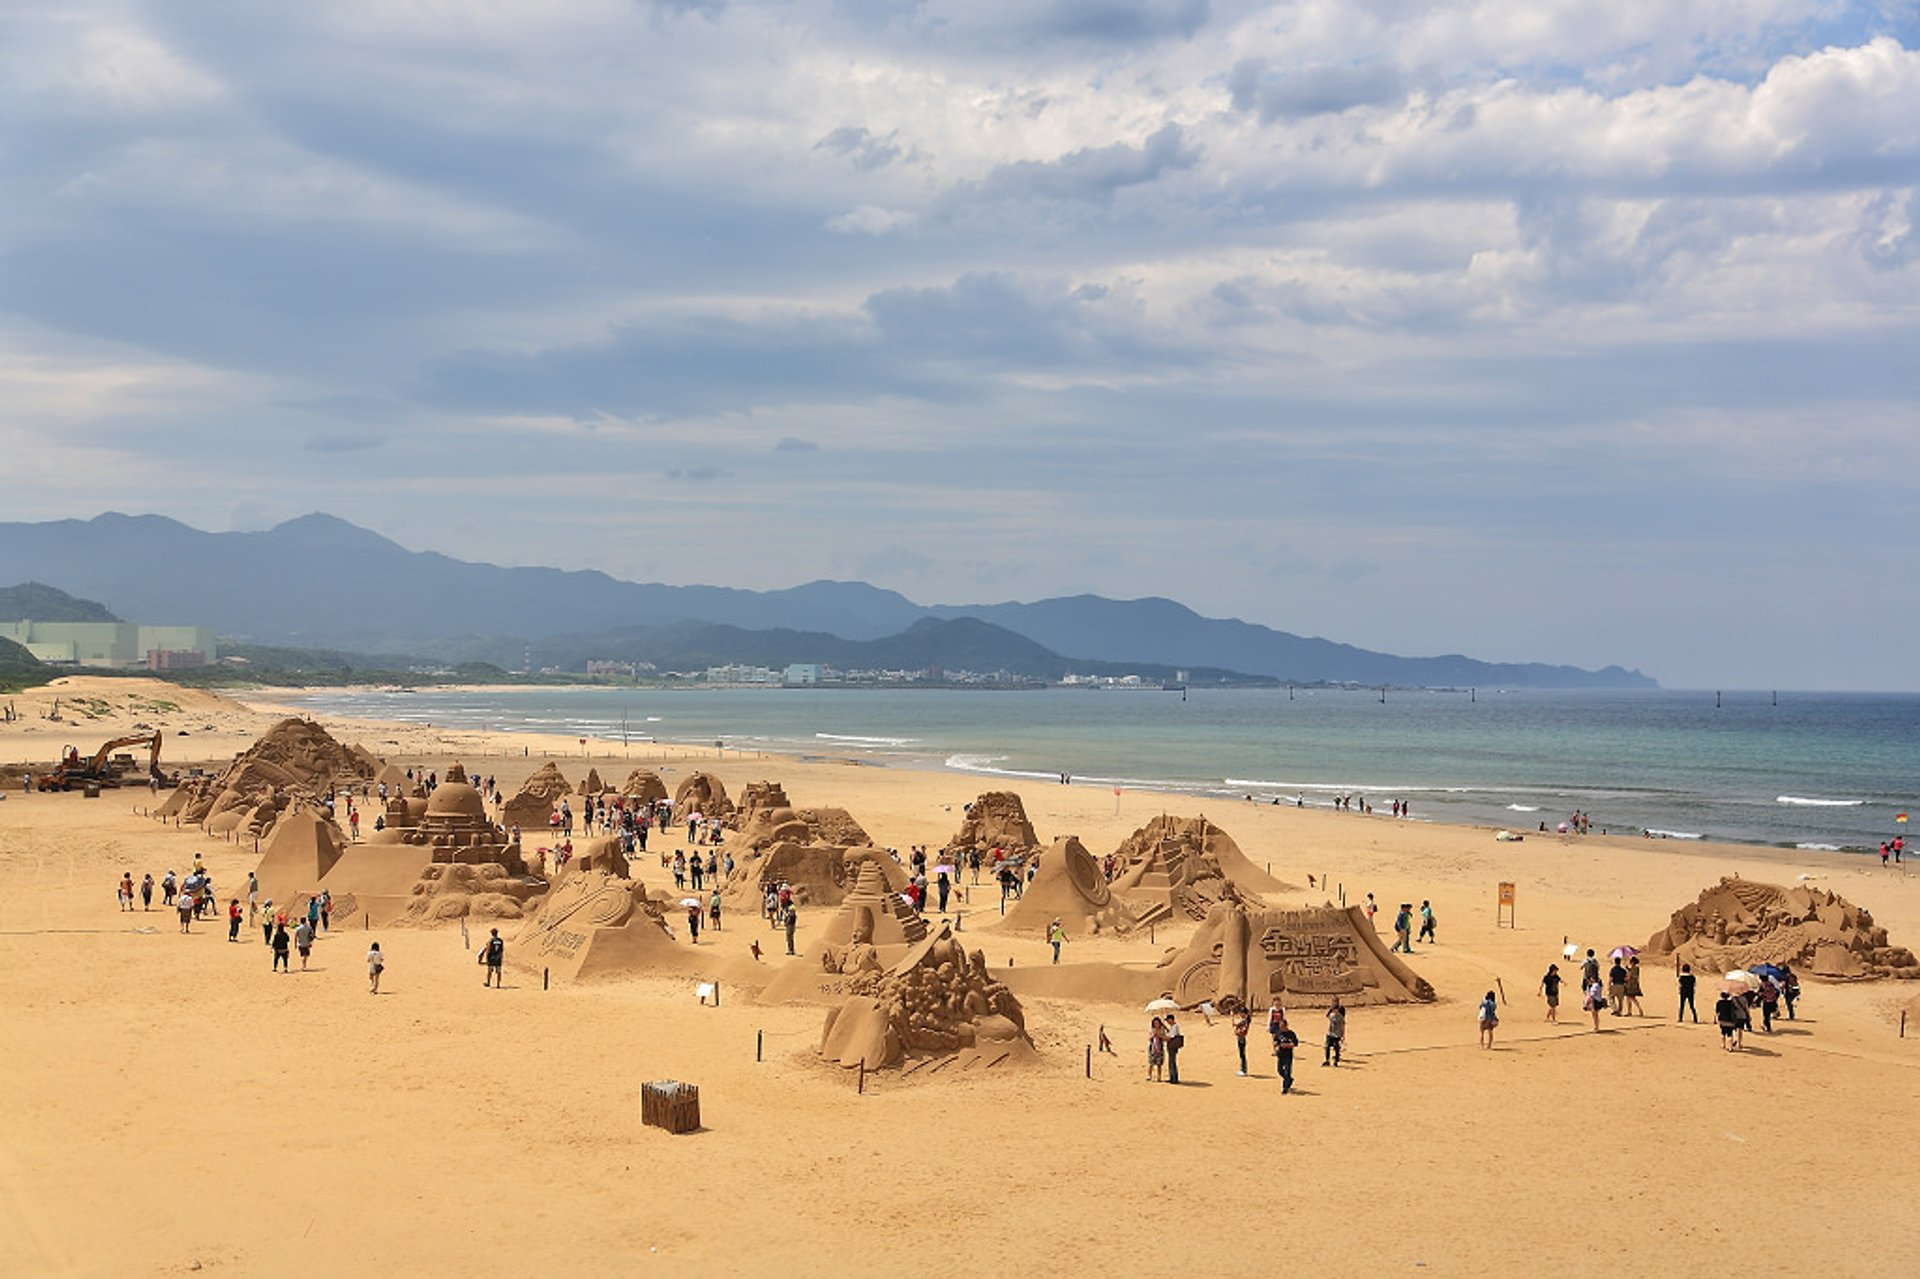 Fulong Sand Sculpture Festival in Taiwan 2020 - Best Time